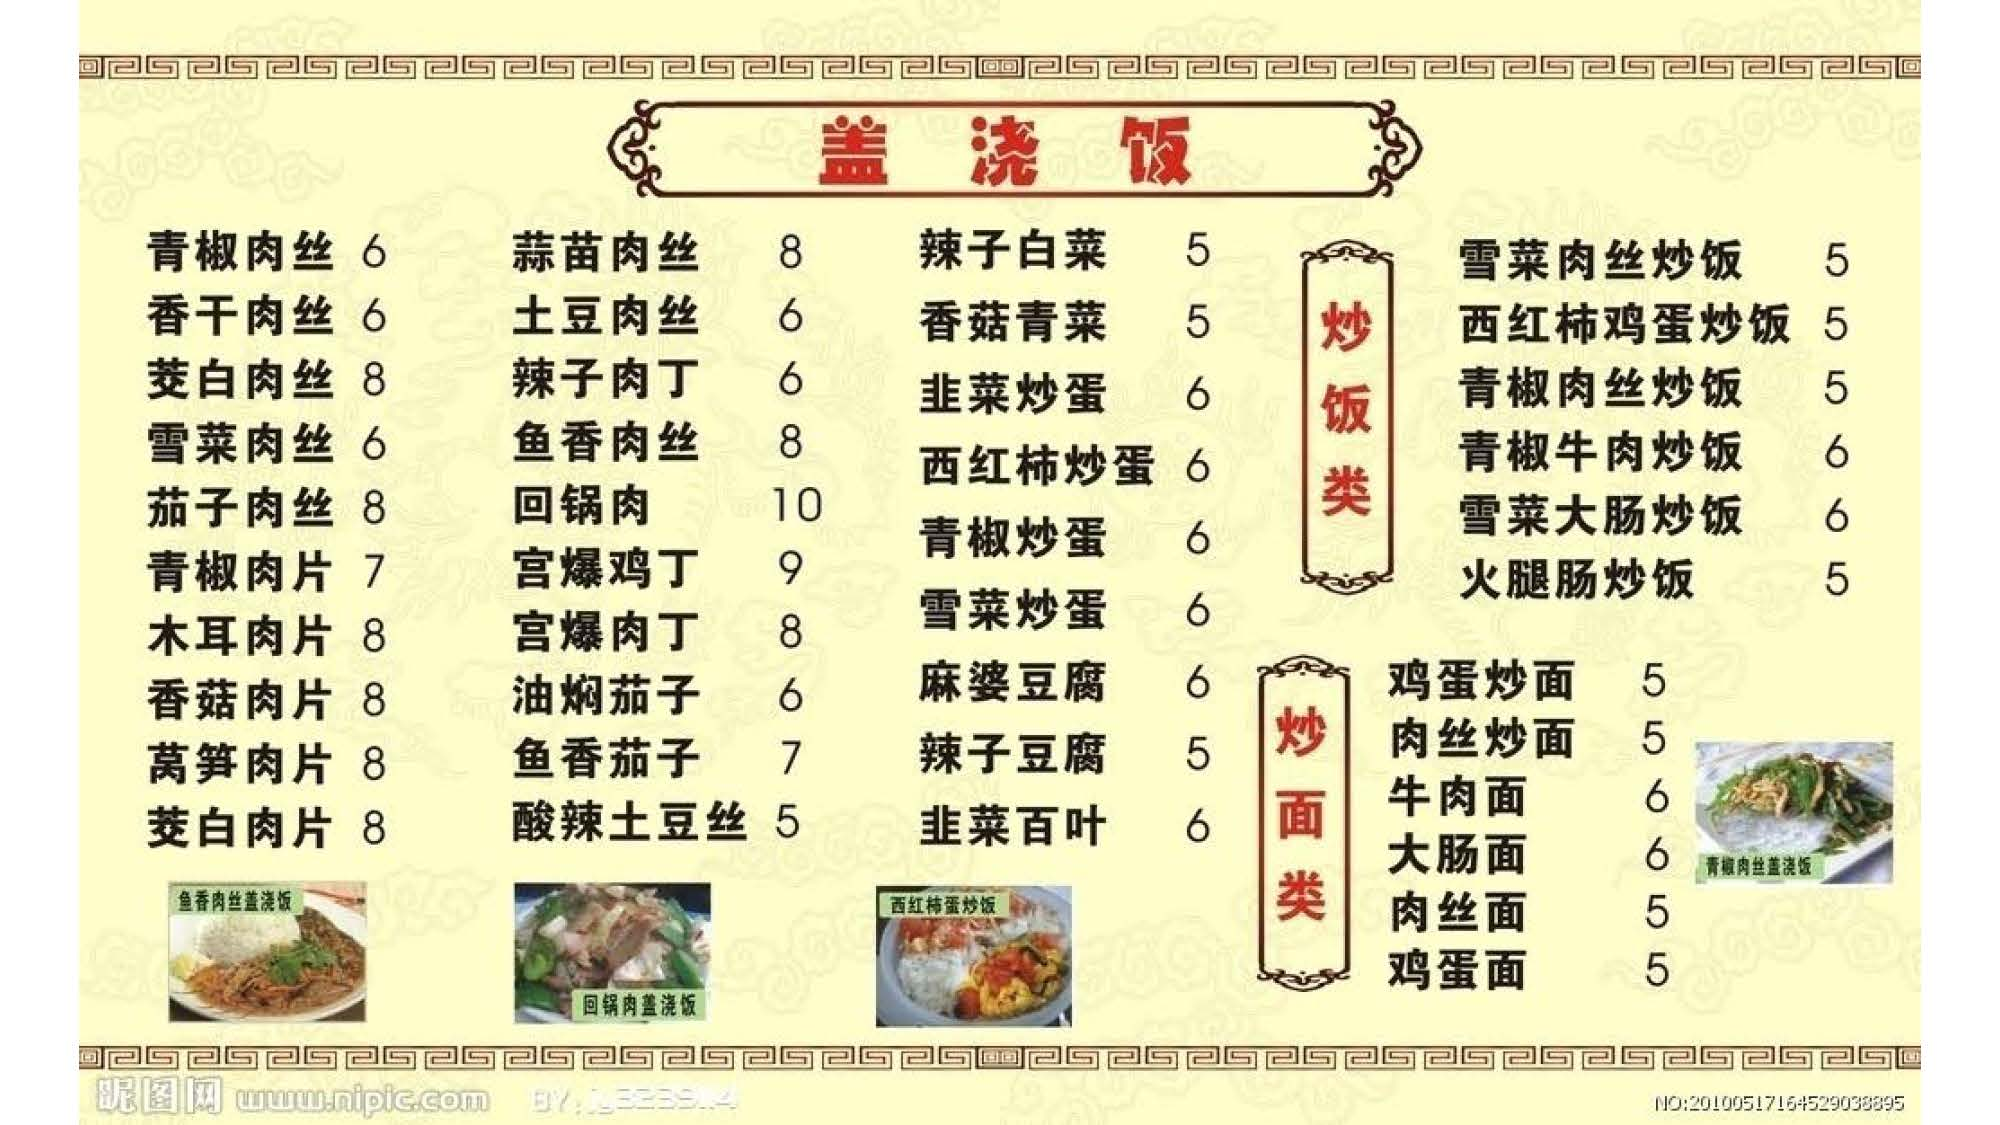 Learn Chinese / Food Menu and Characters ... - YouTube